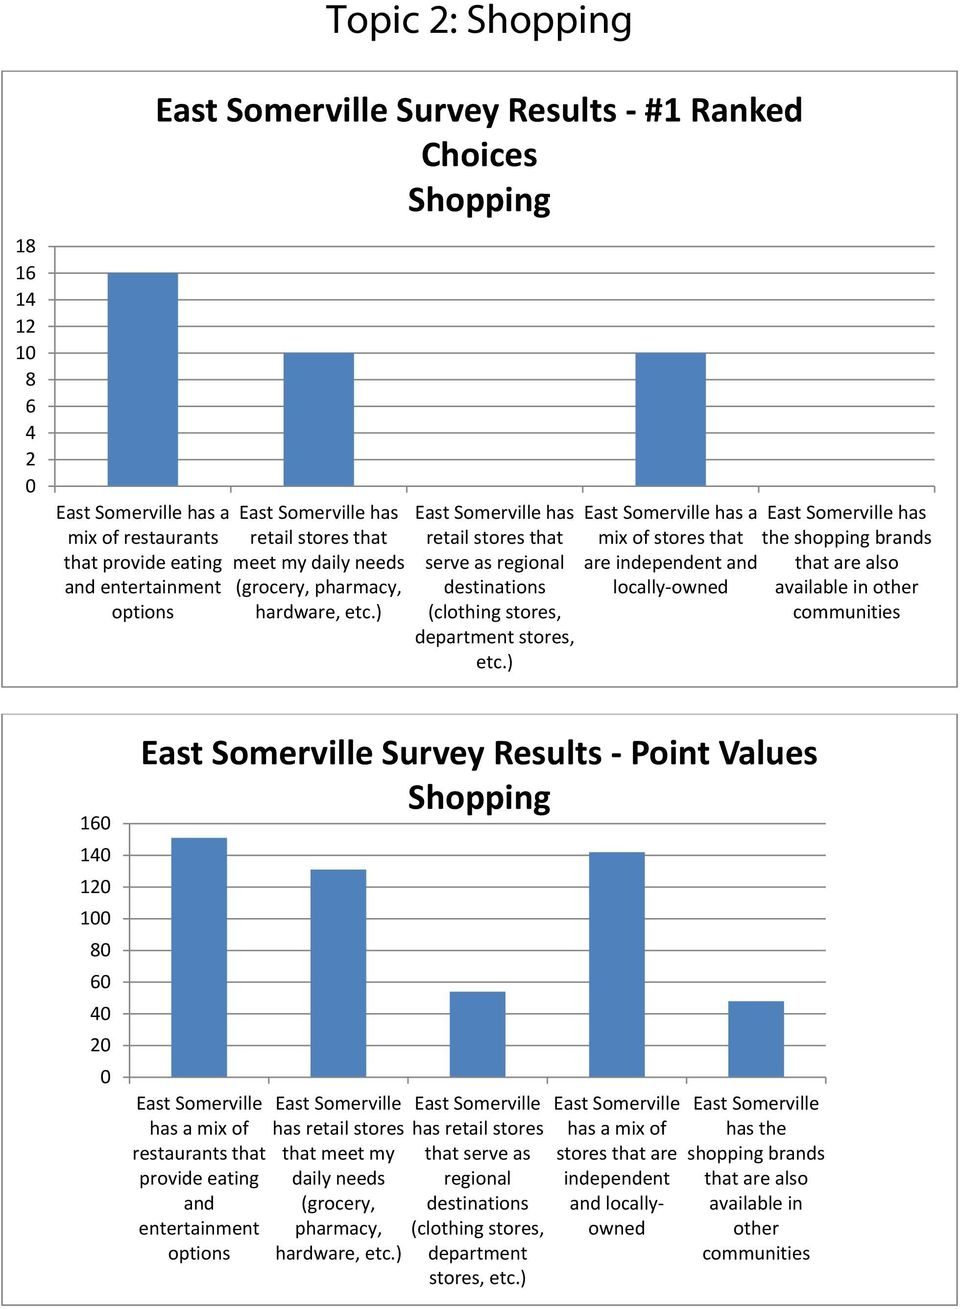 ) has a mix of stores that are independent and locally owned has the shopping brands that are also available in other communities 16 14 12 1 8 6 4 2 Survey Results Point Values Shopping has a mix of